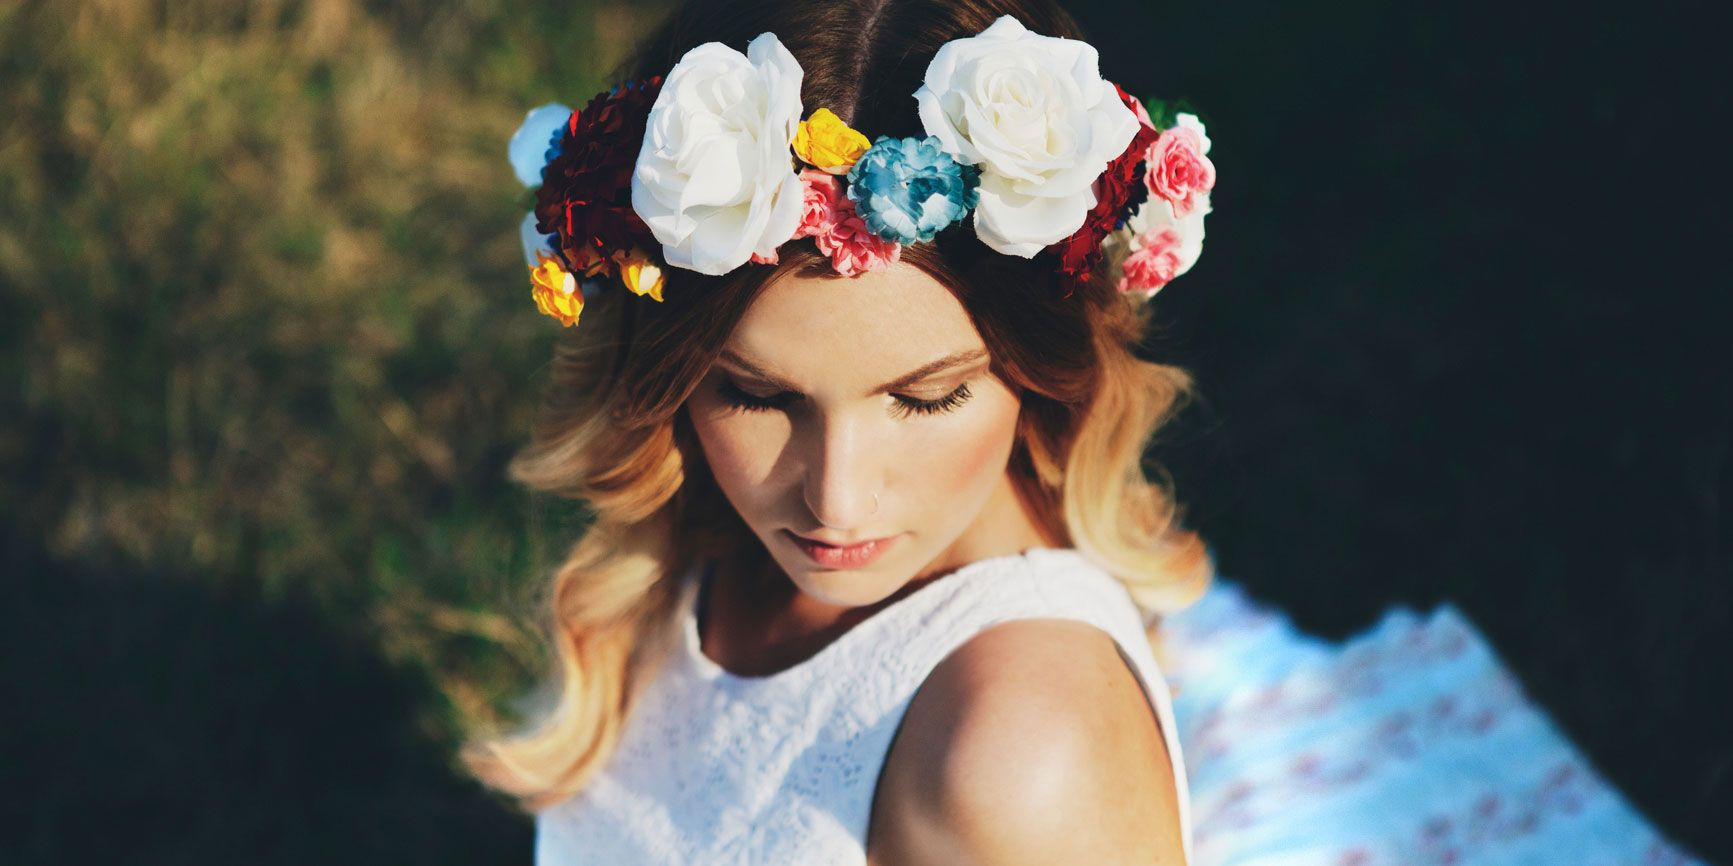 How to make an easy diy flower crown step by step flower crown how to make an easy diy flower crown step by step flower crown tutorial izmirmasajfo